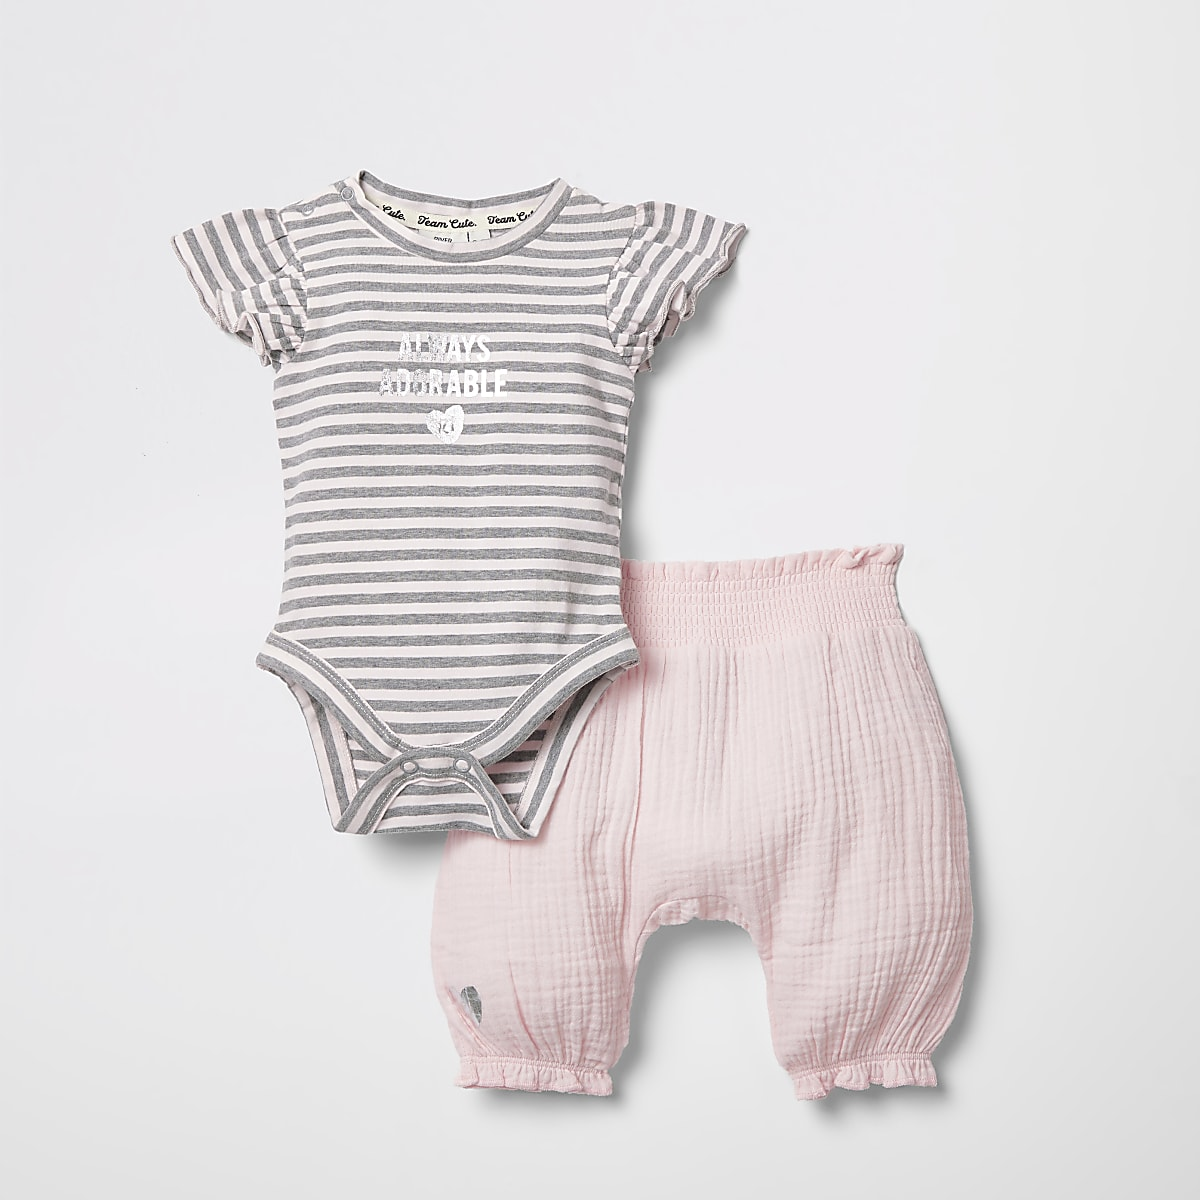 Baby pink stripe bodysuit and pant outfit